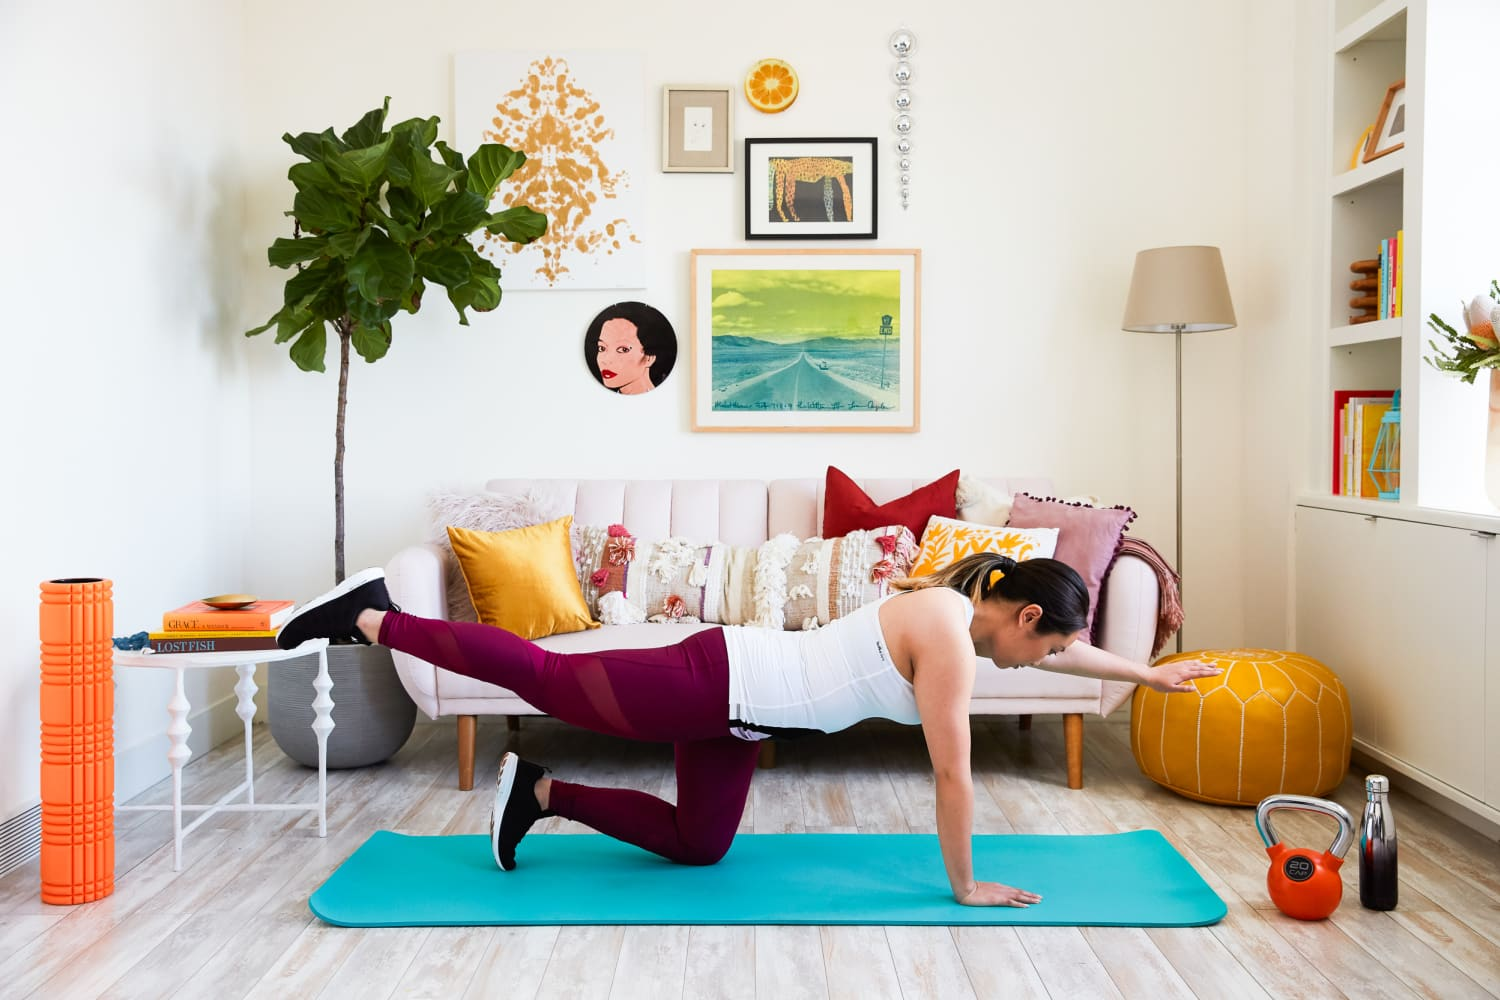 The Best Home Items To Use When You Don't Have Workout Equipment, According to Fitness Experts